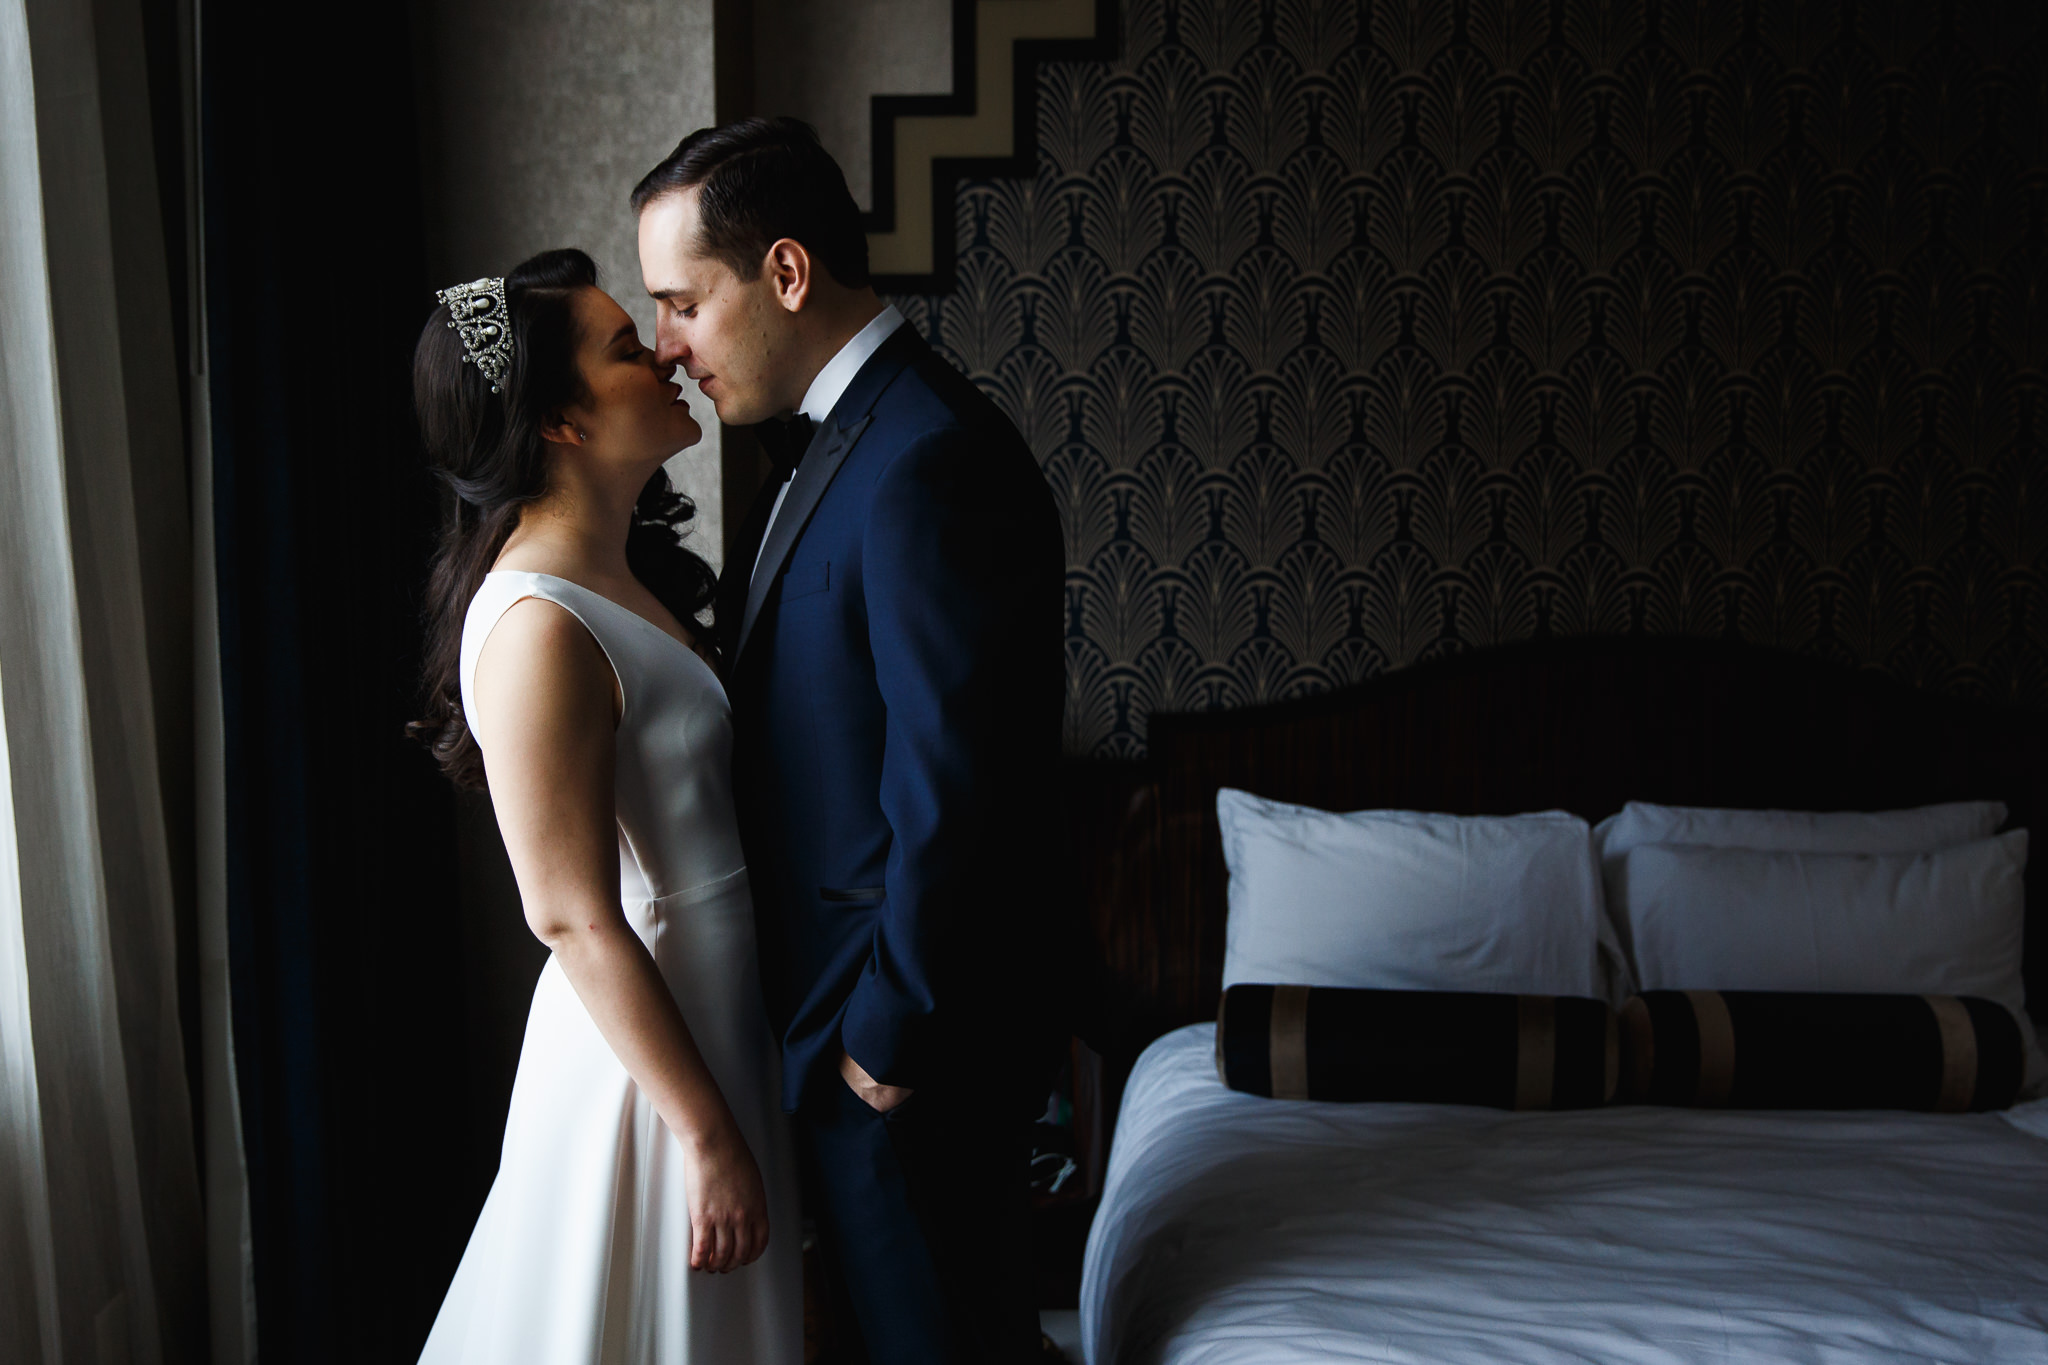 Couple getting ready together before wedding. Kissing after putting on wedding attire. Royal wedding inspiration. Wedding tiara and blue suit.